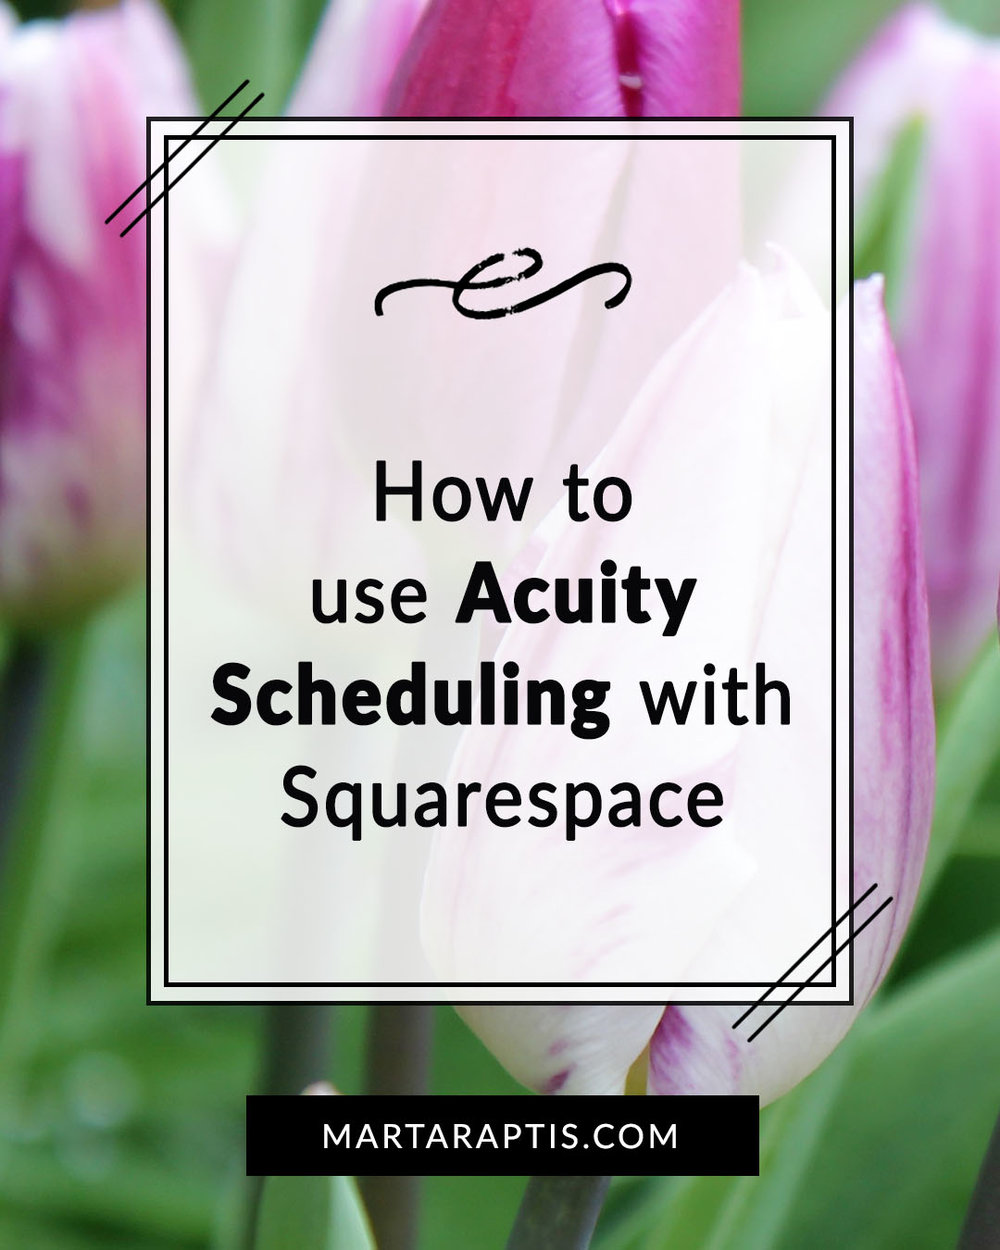 How to use Acuity Scheduling with Squarespace